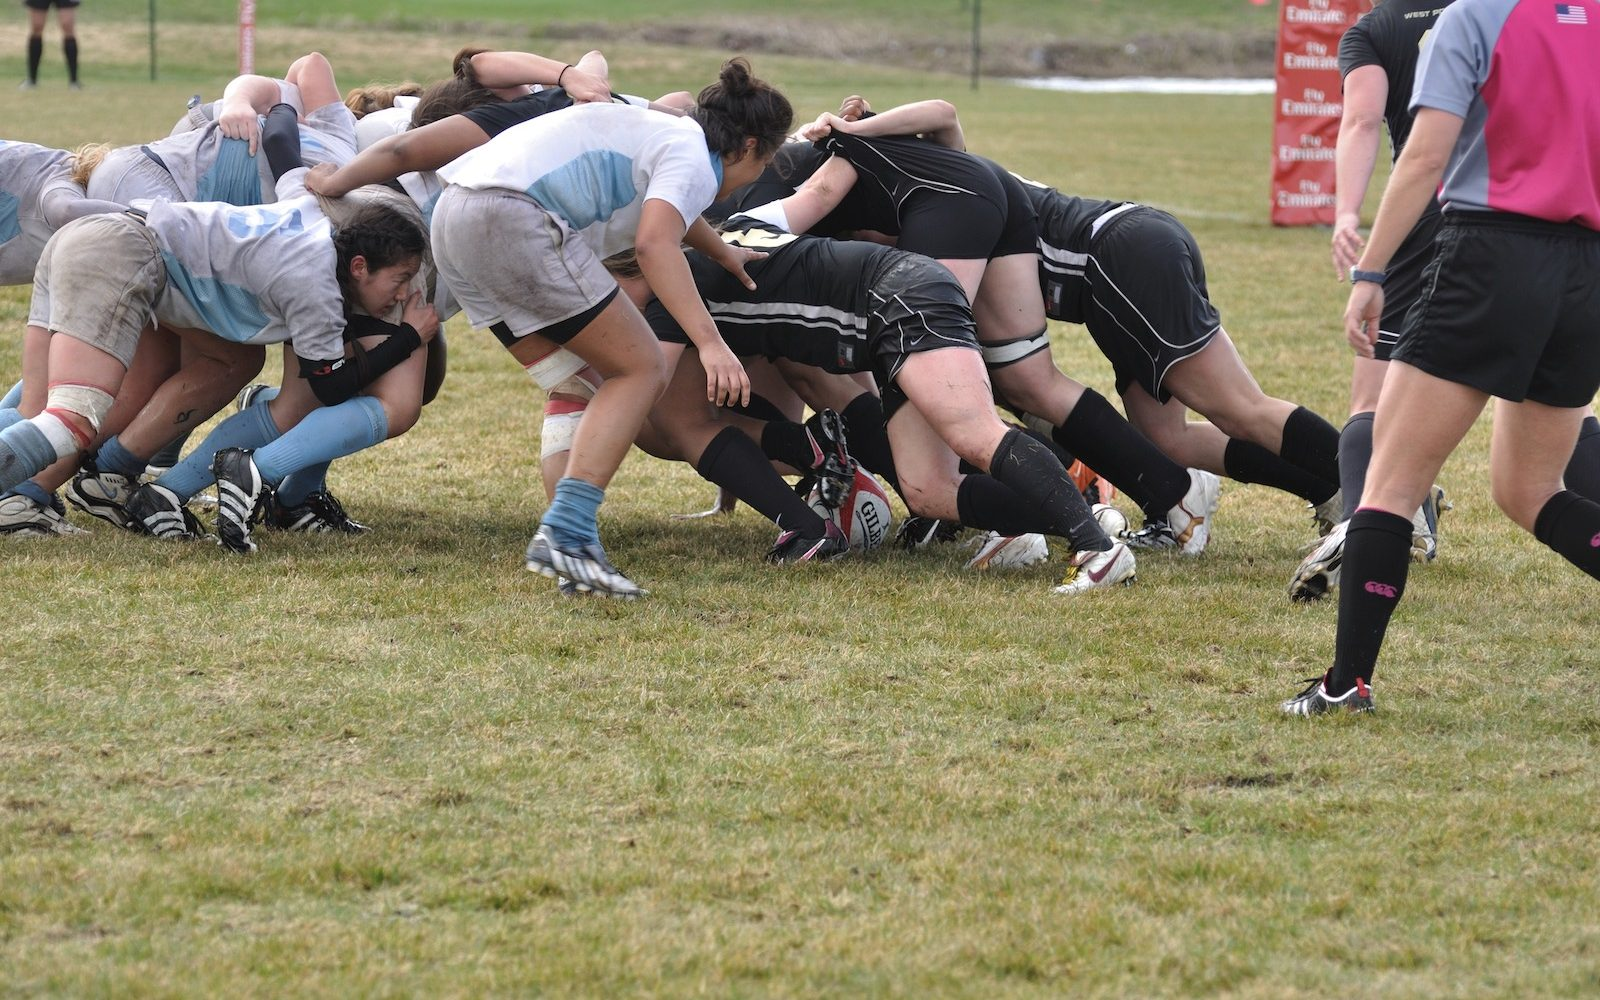 BLAINE, MN - APRIL 30: A scrum in a women's collegiate rugby match between Army and the North Carolina Tar Heels in the NCAA Division I College Championship quarterfinals on April 30, 2011 in Blaine, MN